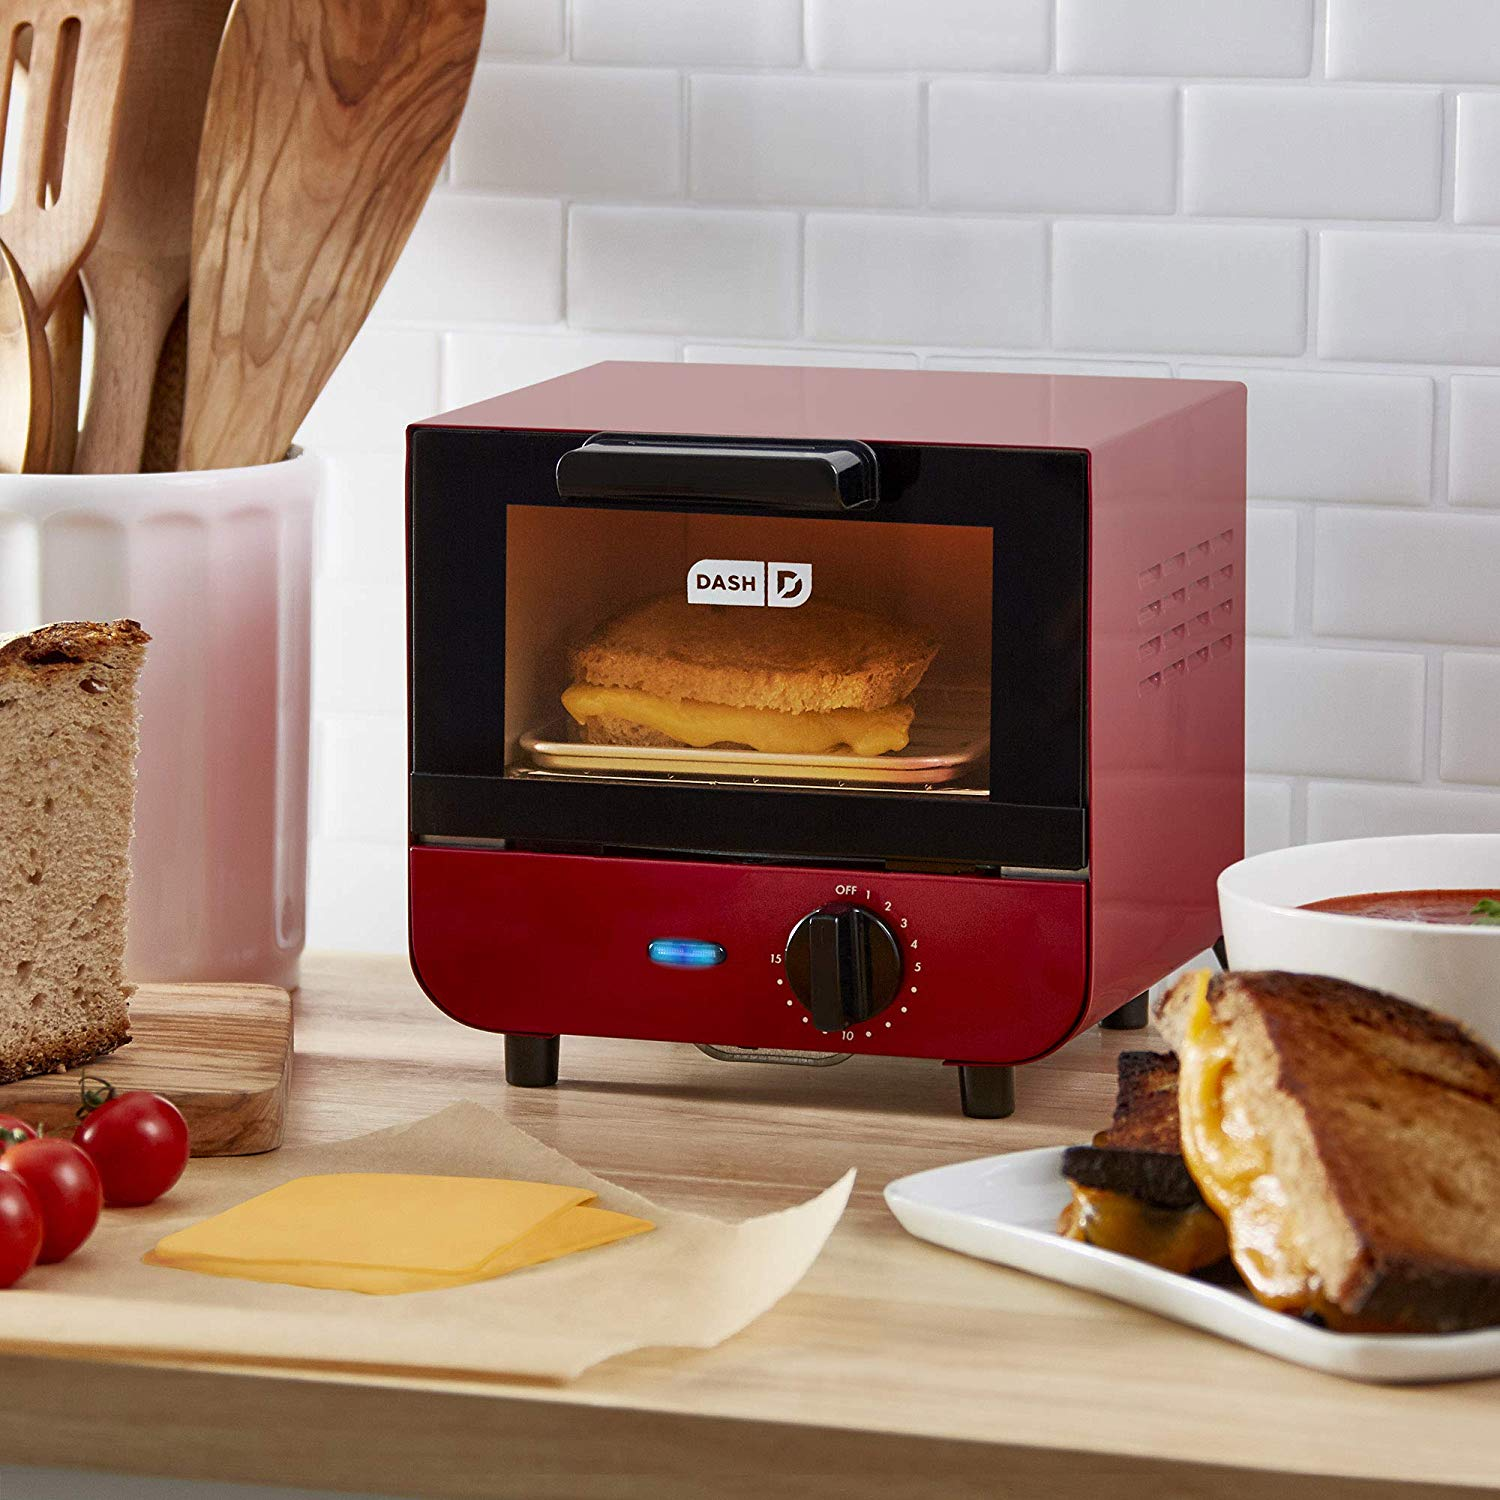 Dash DMTO100GBRD04 Mini Toaster Oven Cooker for Bread